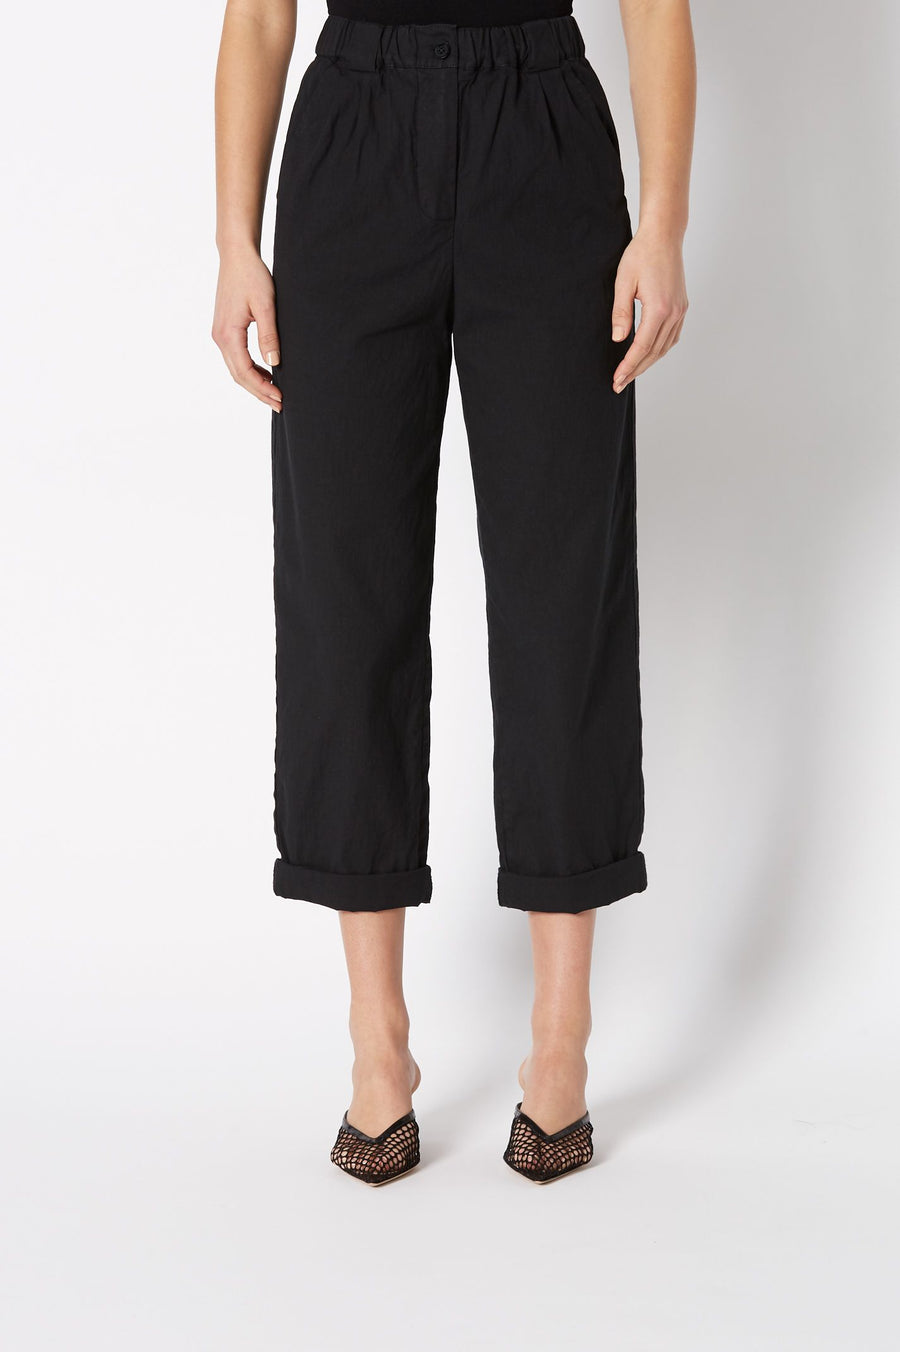 Italian fabric with a hint of comfort stretch will keep you cool and comfy in these trousers, in any situation.